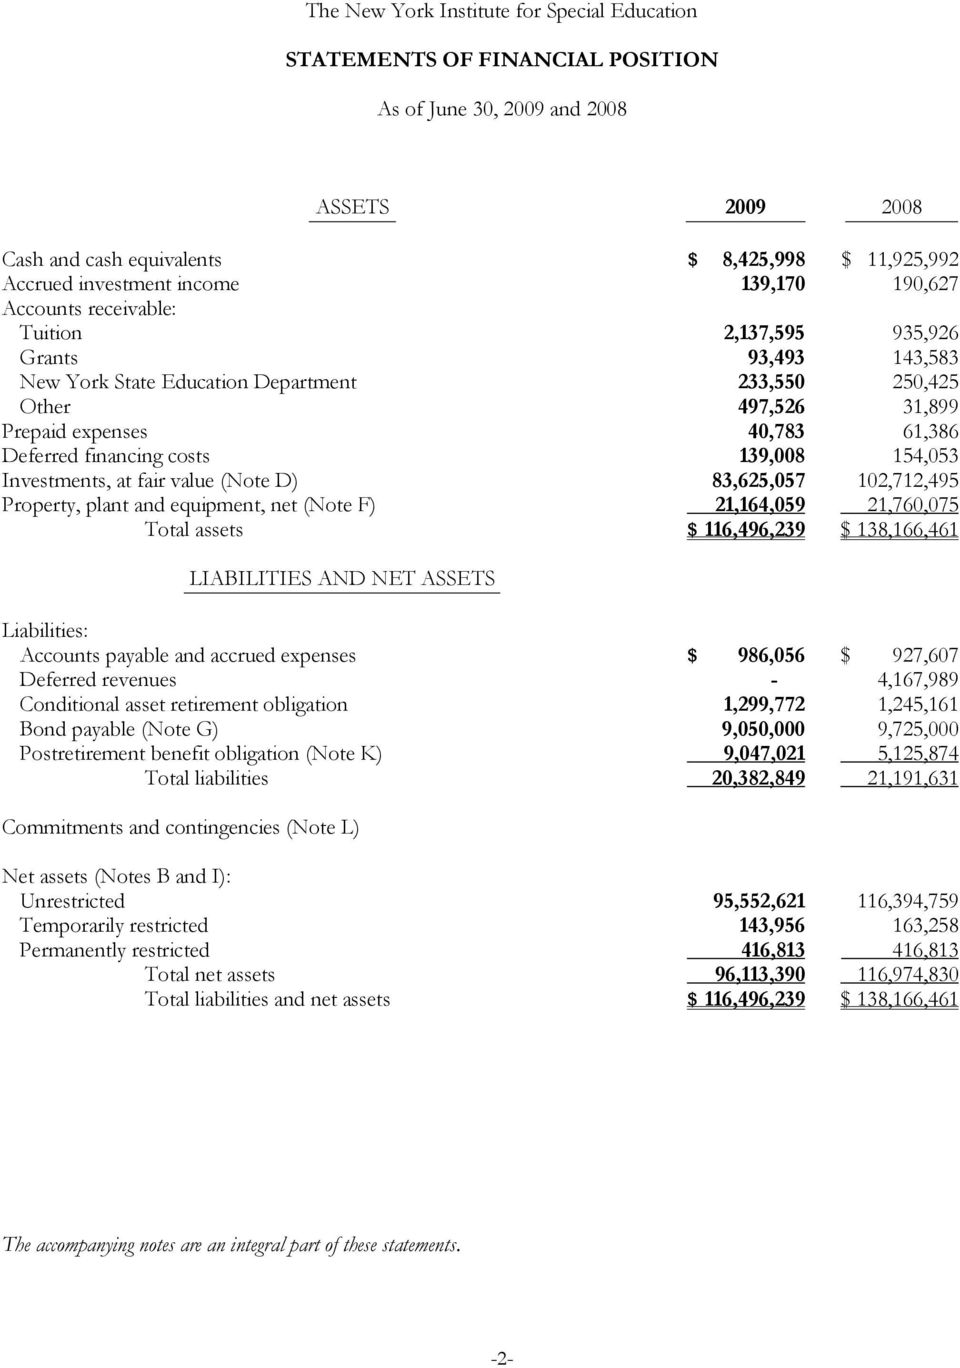 D) 83,625,057 102,712,495 Property, plant and equipment, net (Note F) 21,164,059 21,760,075 Total assets $ 116,496,239 $ 138,166,461 LIABILITIES AND NET ASSETS Liabilities: Accounts payable and